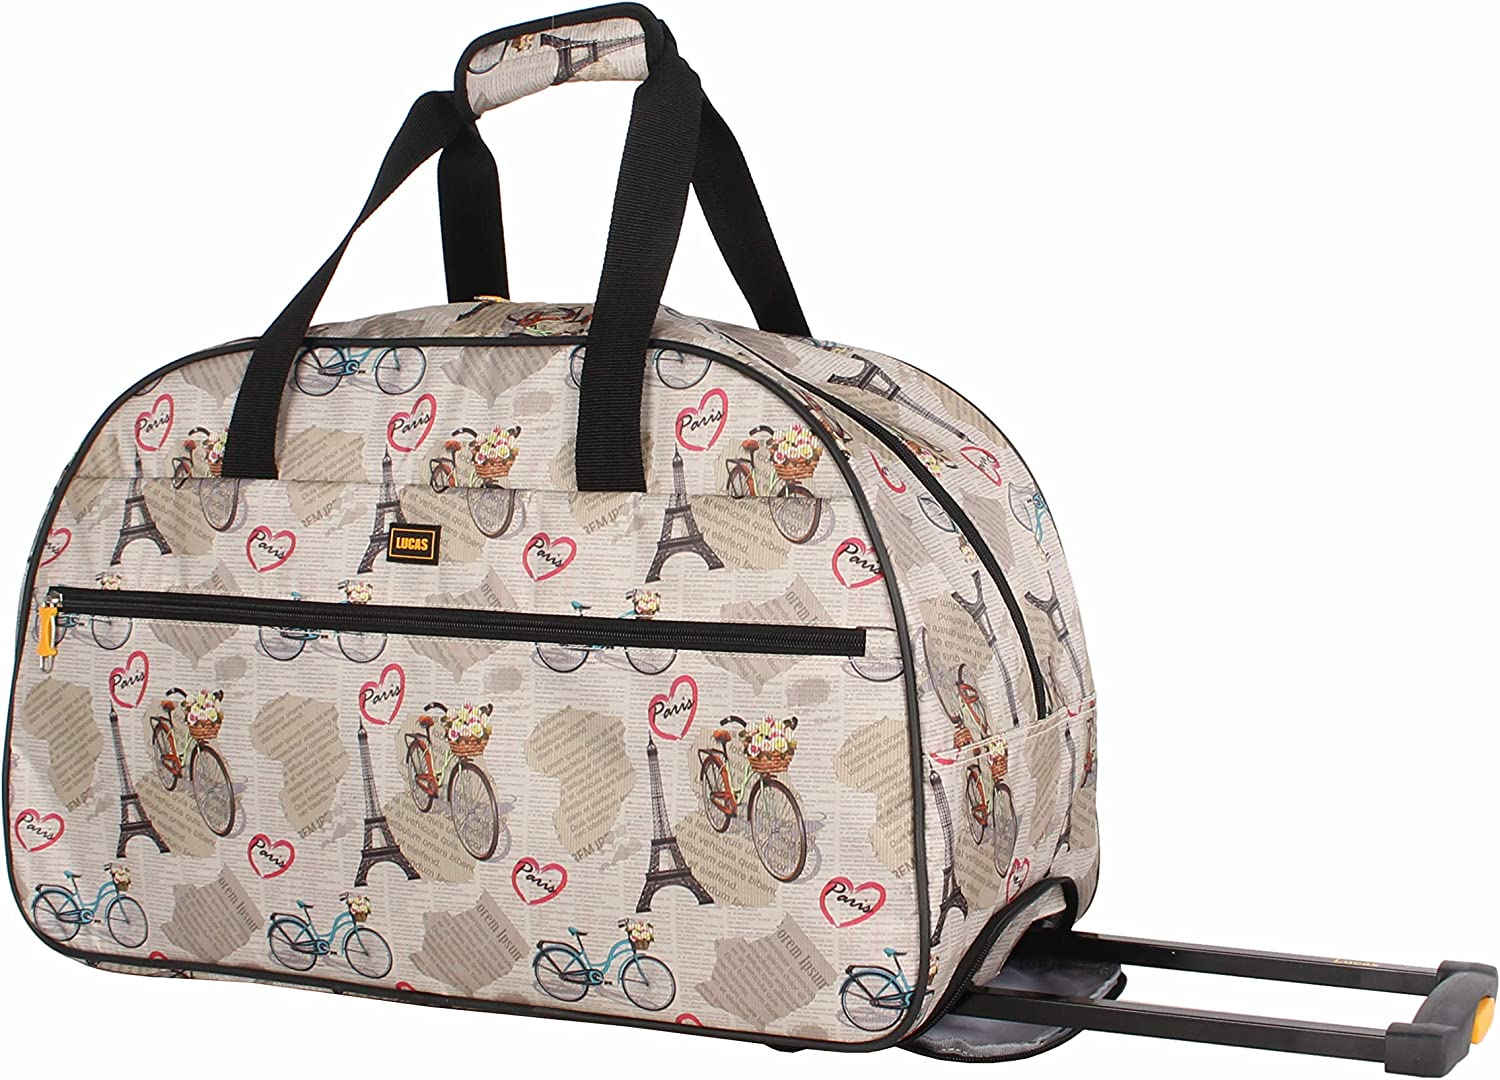 Lucas Designer Carry On Luggage - Lightweight Factory outlet shopping Pattern Collection